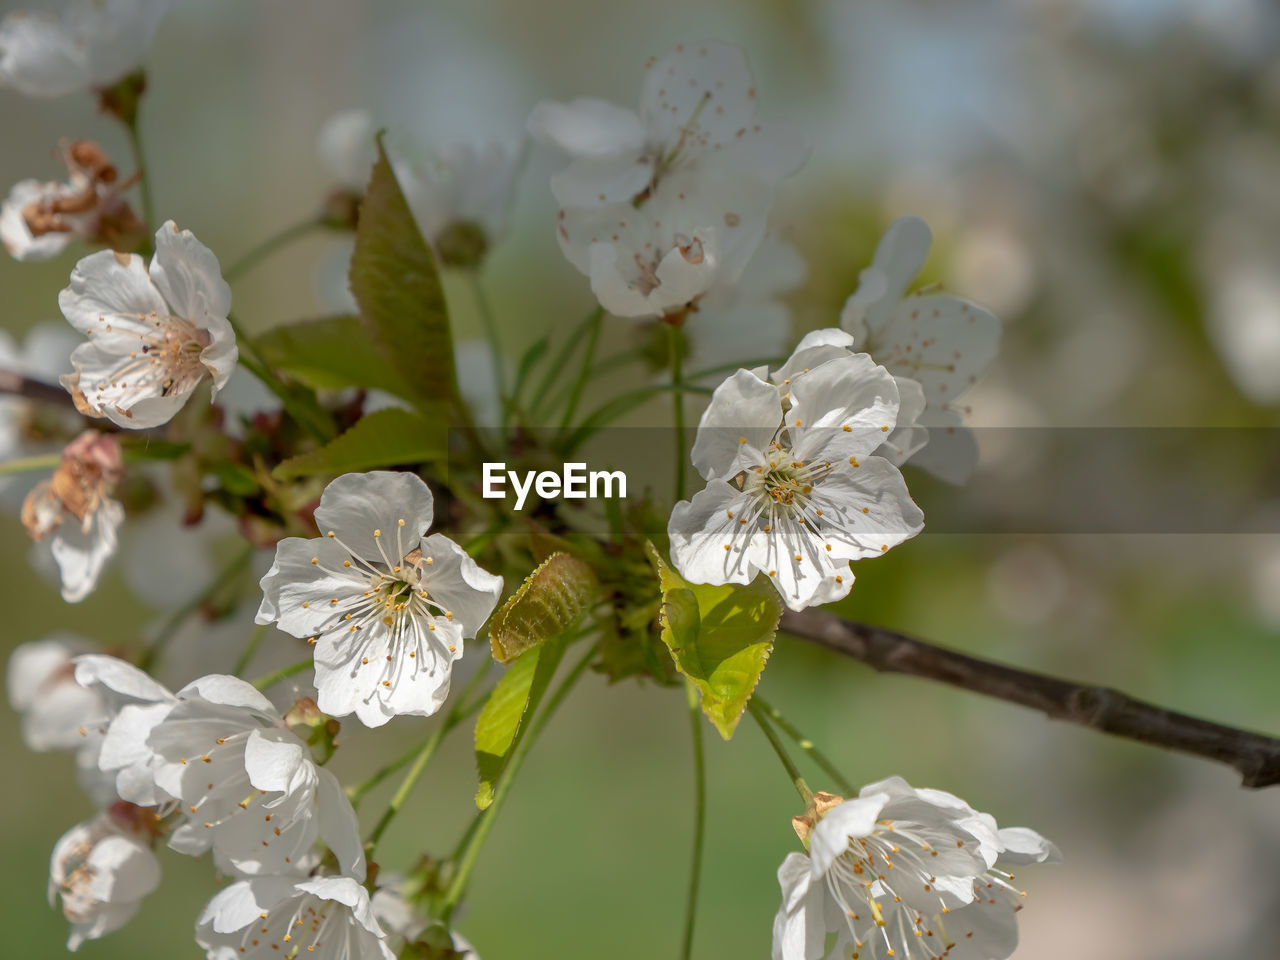 flowering plant, flower, beauty in nature, plant, growth, fragility, vulnerability, white color, freshness, petal, close-up, focus on foreground, flower head, inflorescence, no people, nature, springtime, pollen, blossom, day, outdoors, cherry blossom, cherry tree, spring